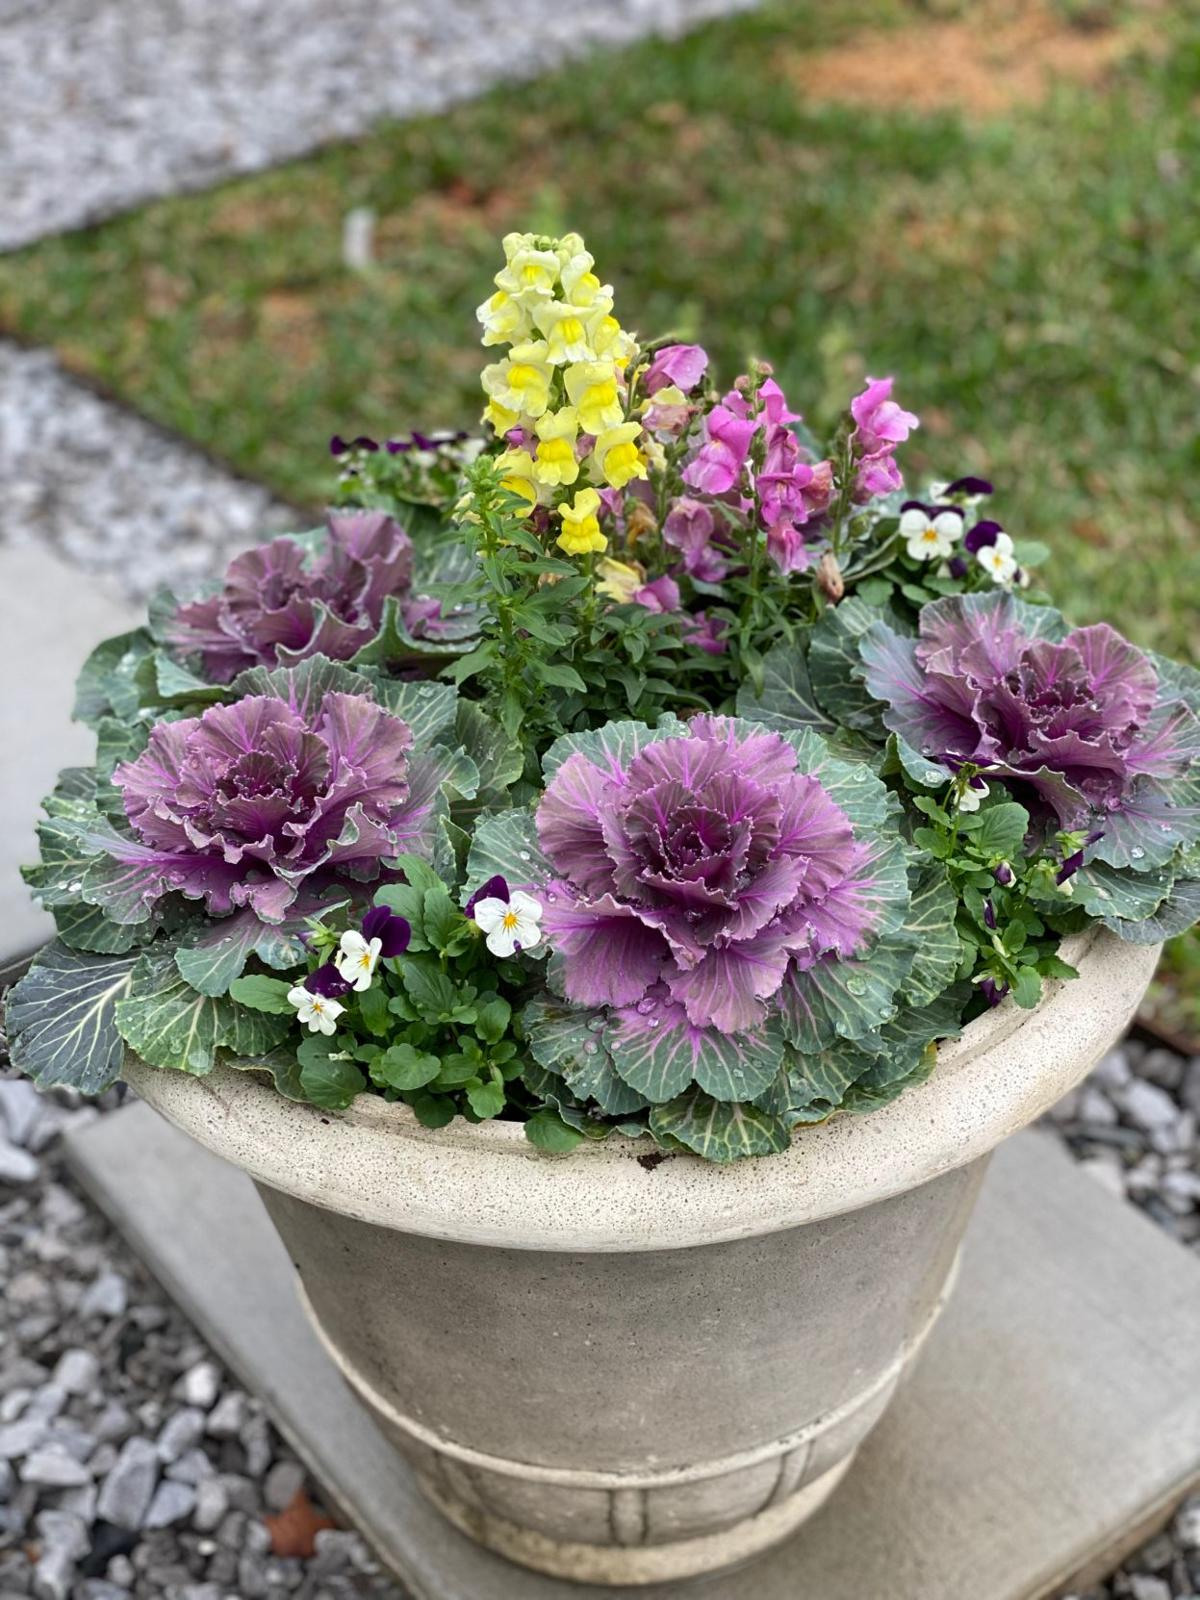 Ornamental kale, snapdragons and sorbet violas make a dazzl.JPG